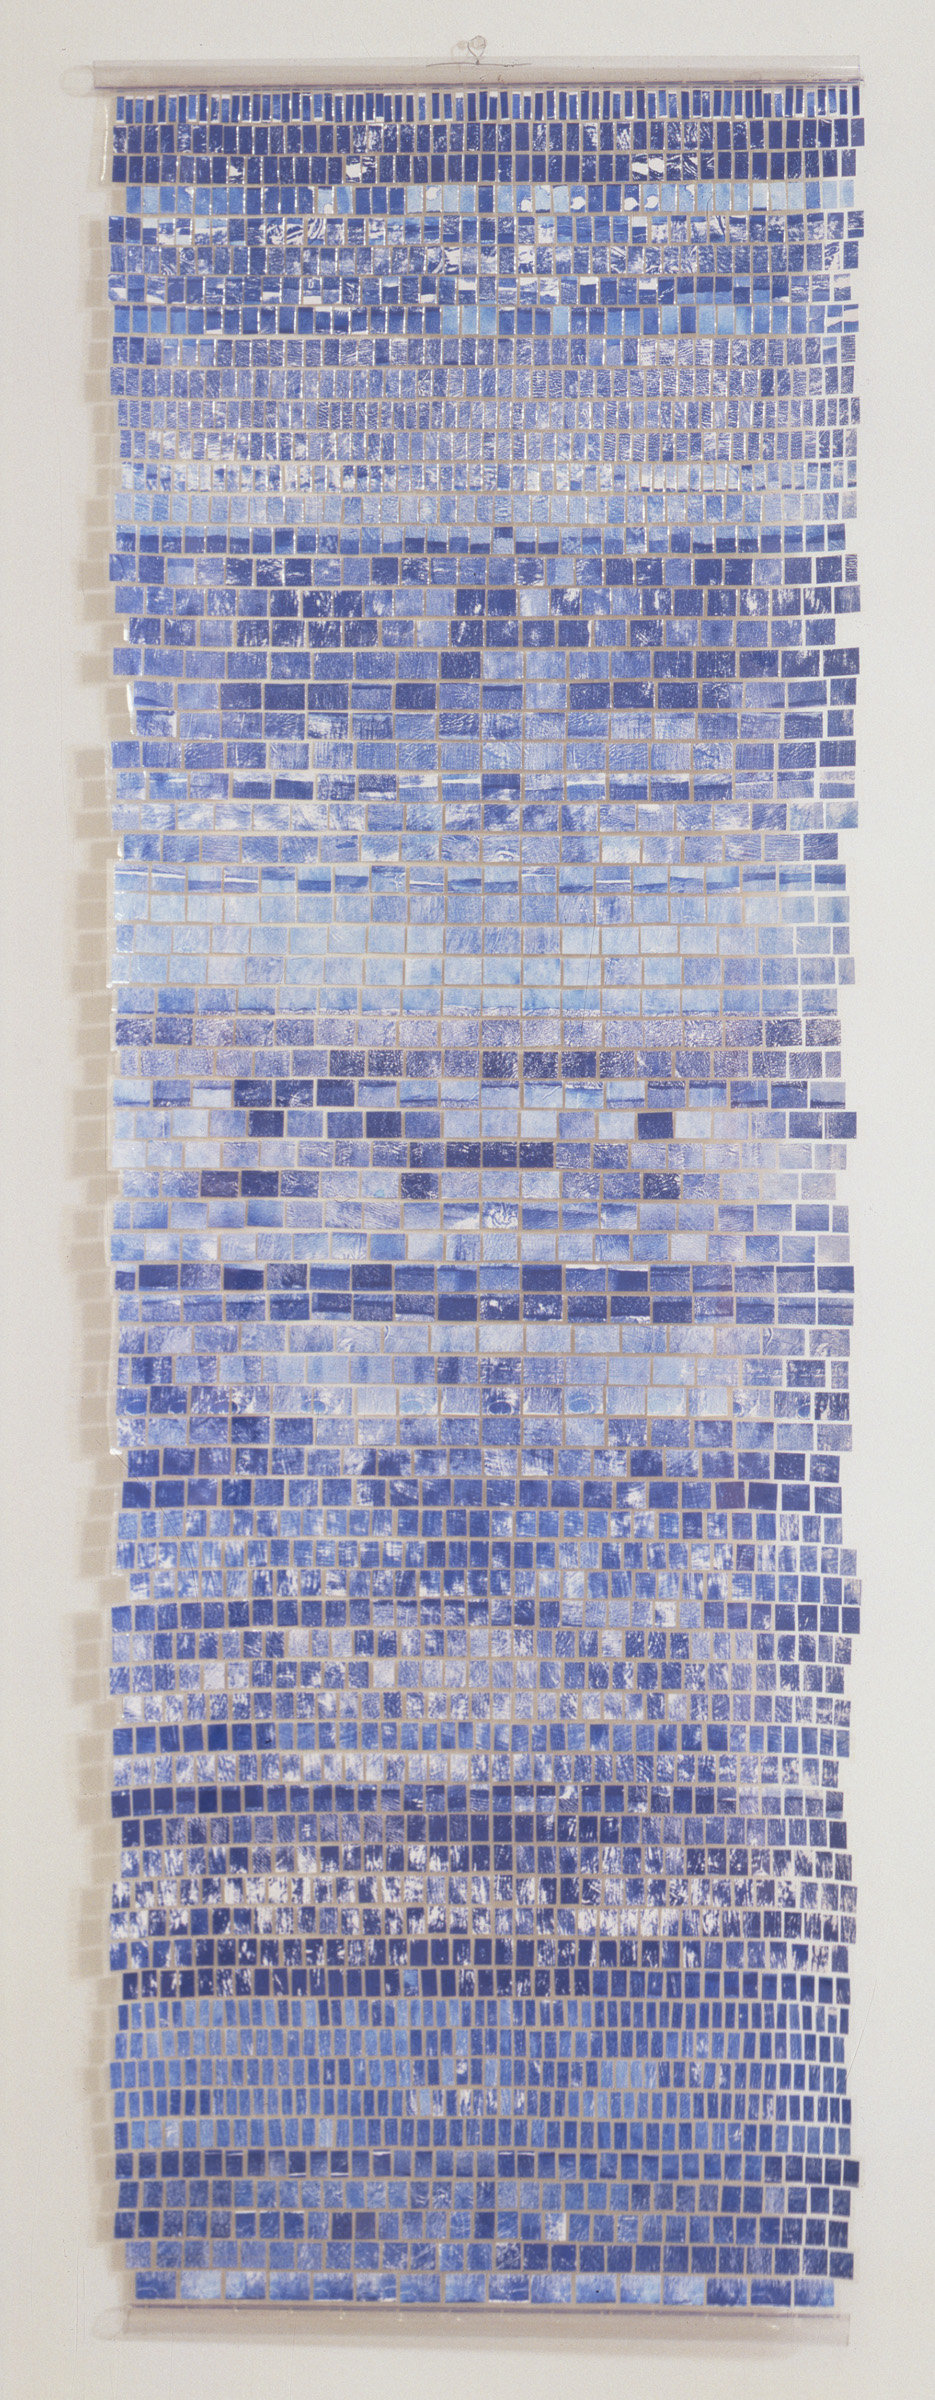 ", 2000. Ink on paper laminated on polyester, 73"" x 25"" (185.4 cm x 63.5 cm)."